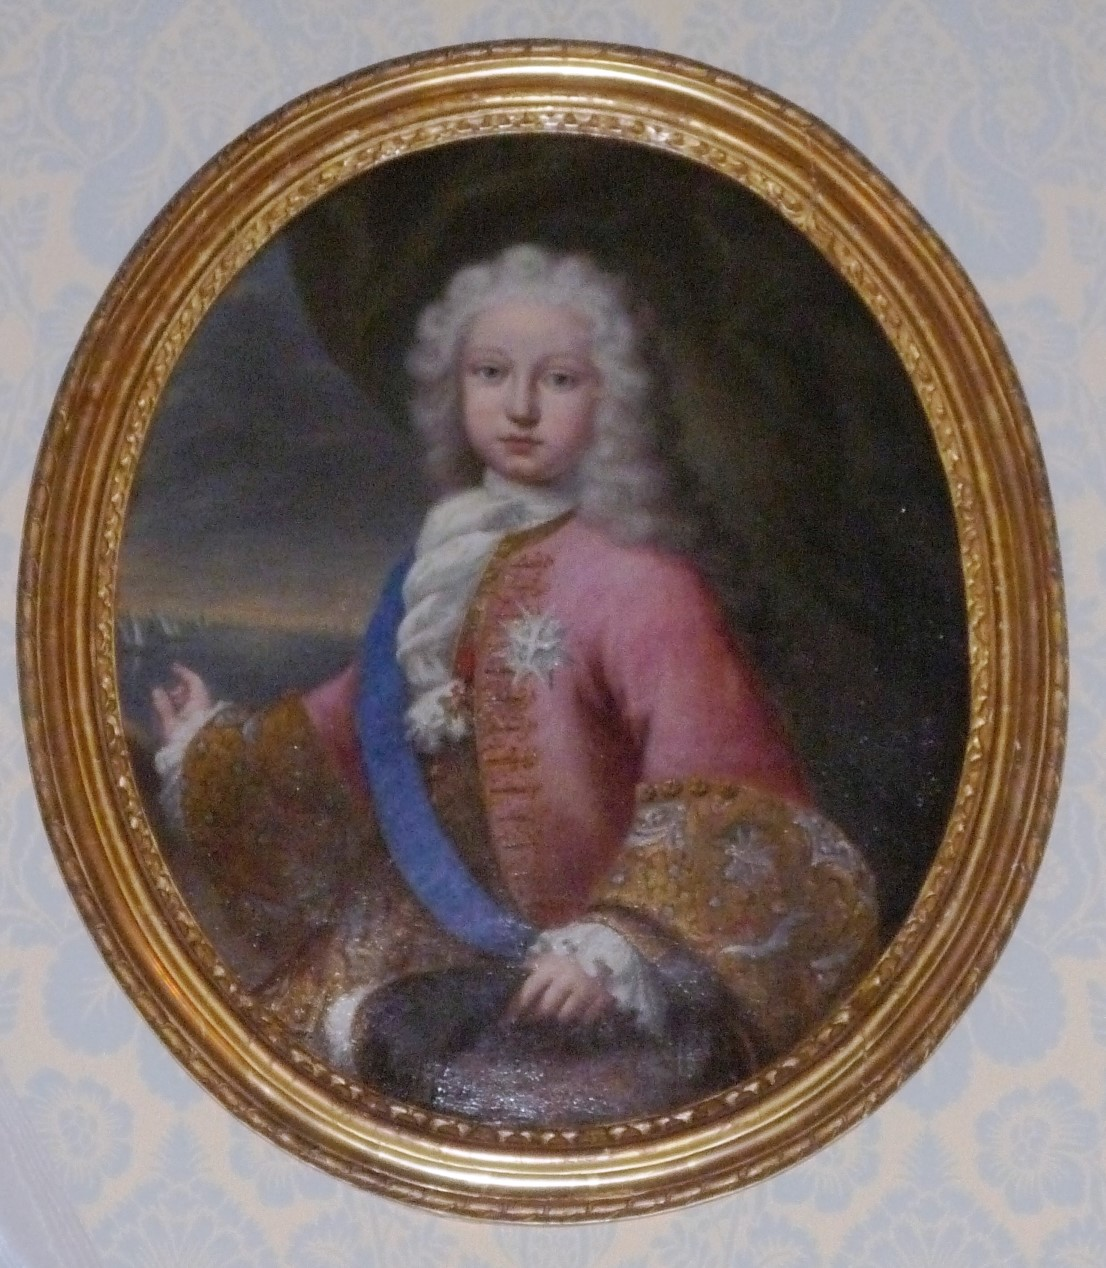 Portrait of a Prince, French School, mid 18th Century.